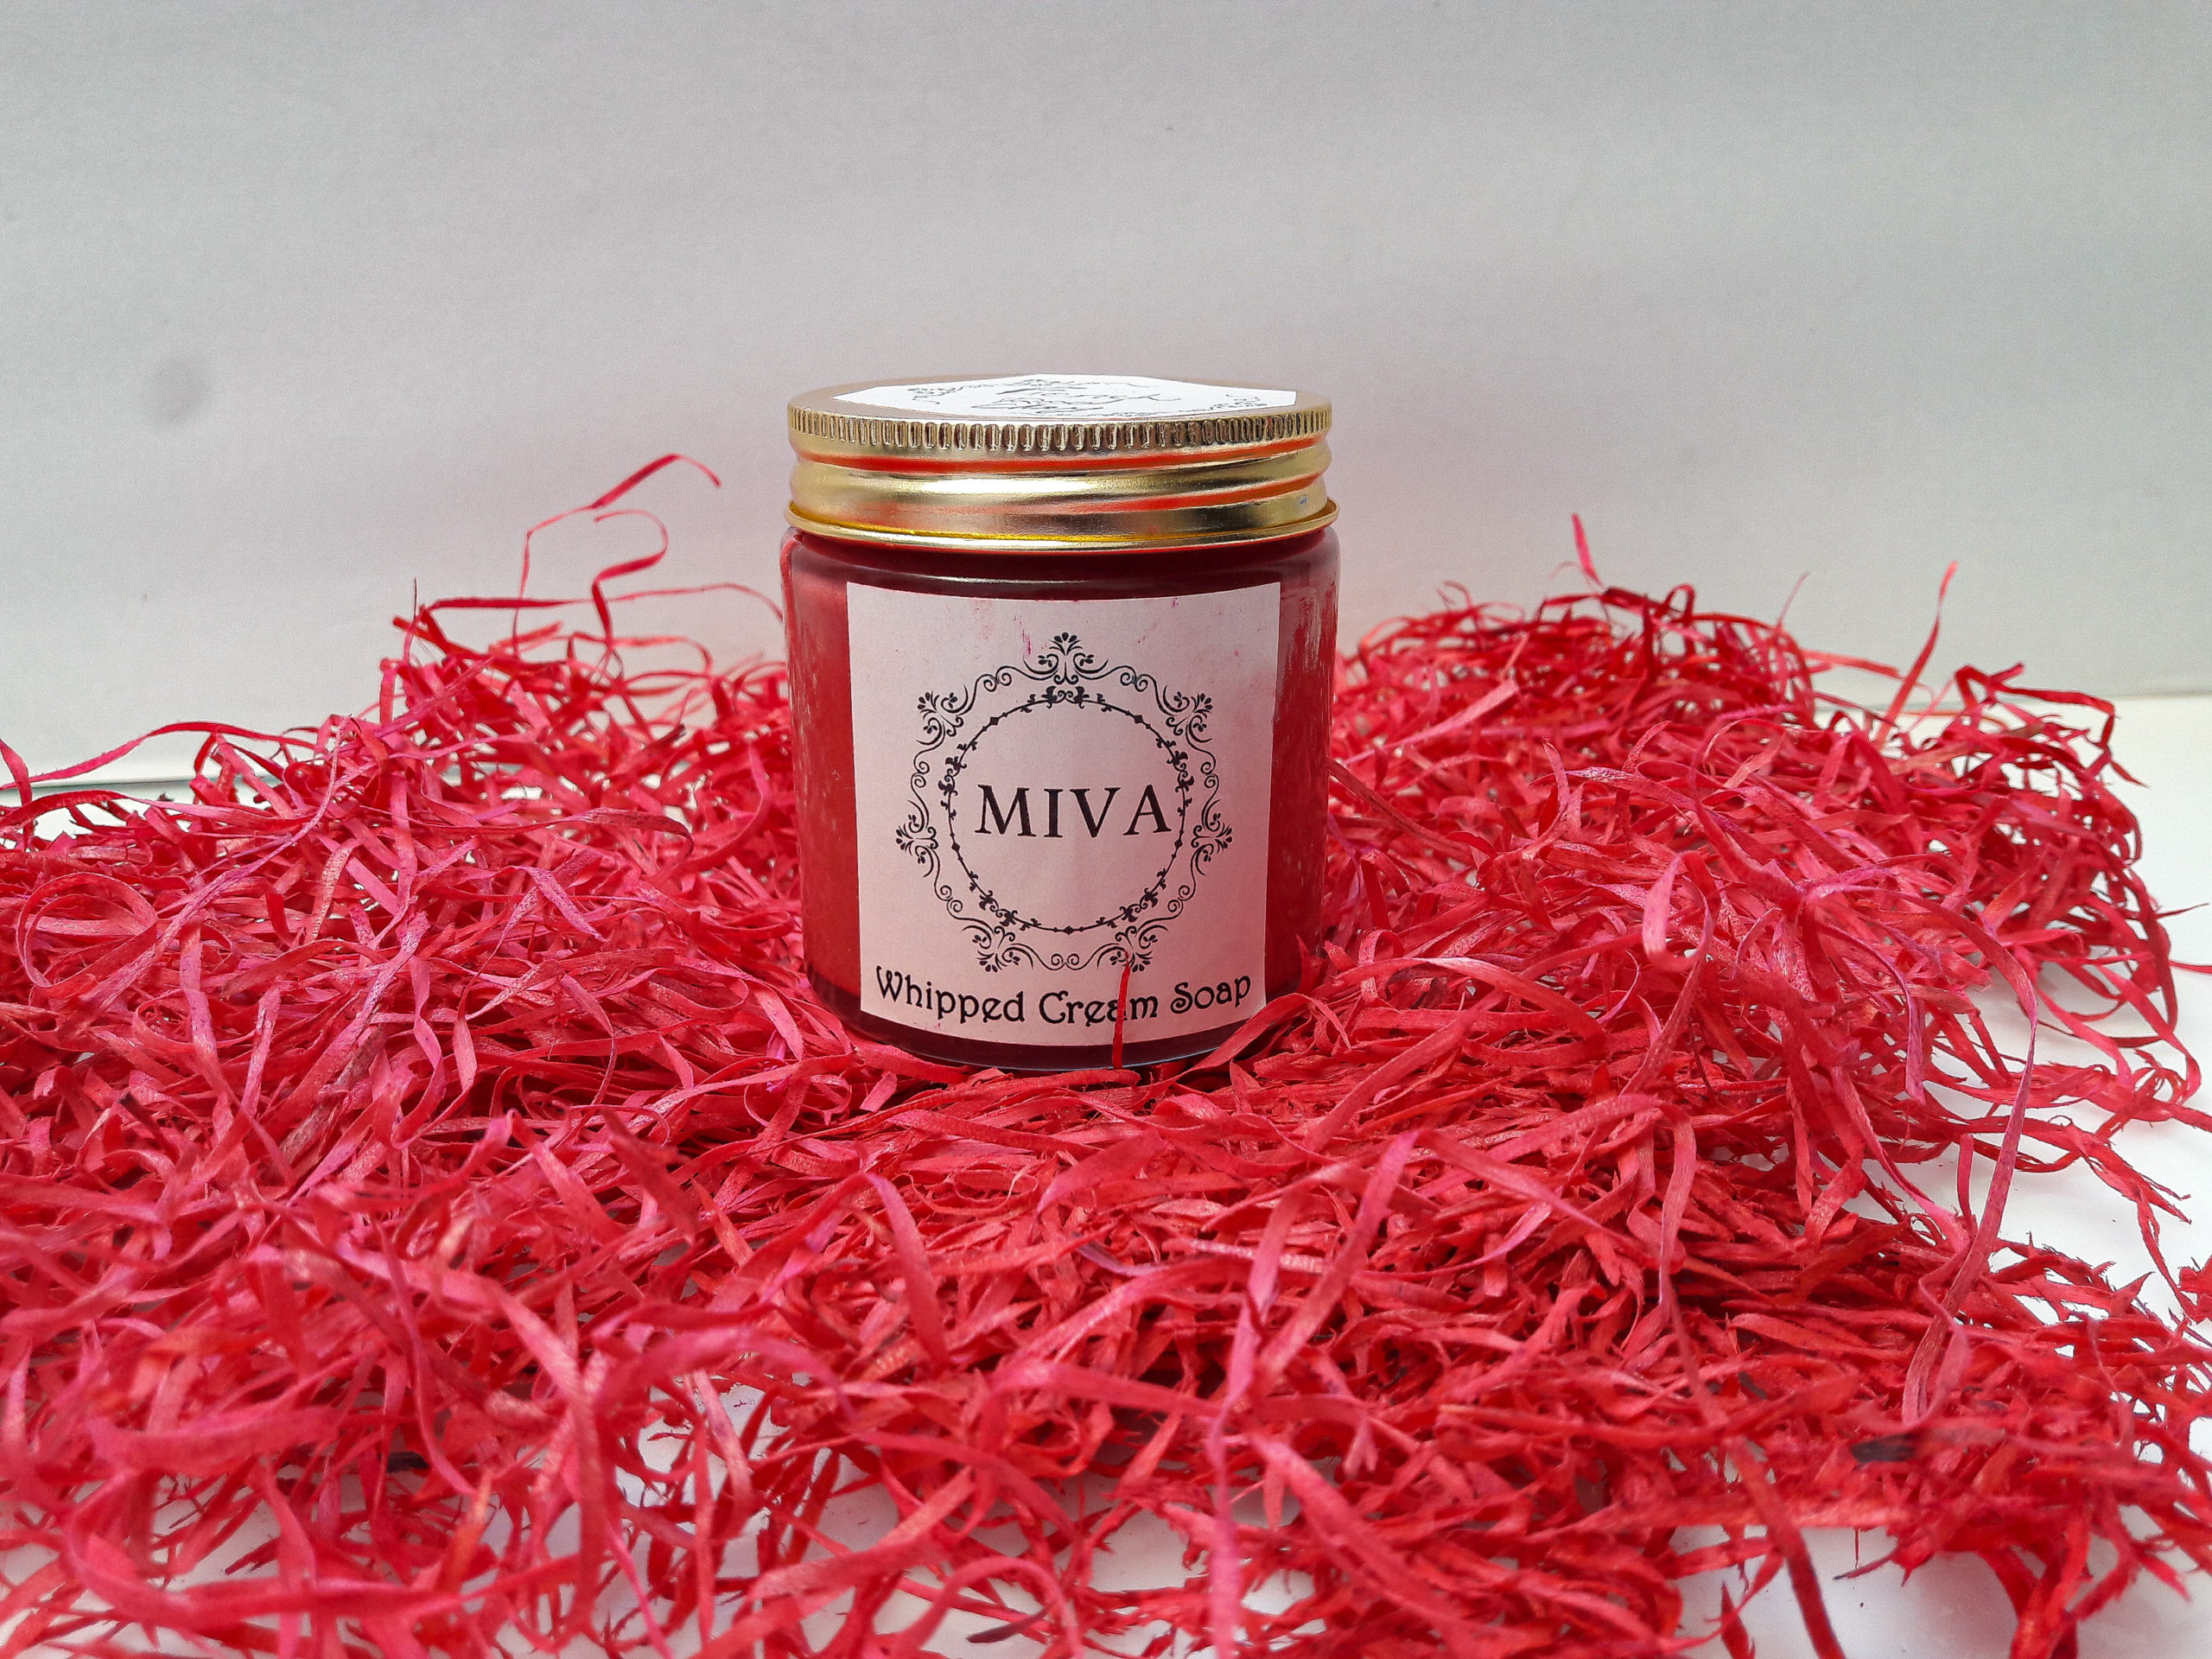 French Red Clay Whipped Soap by Miva Naturals